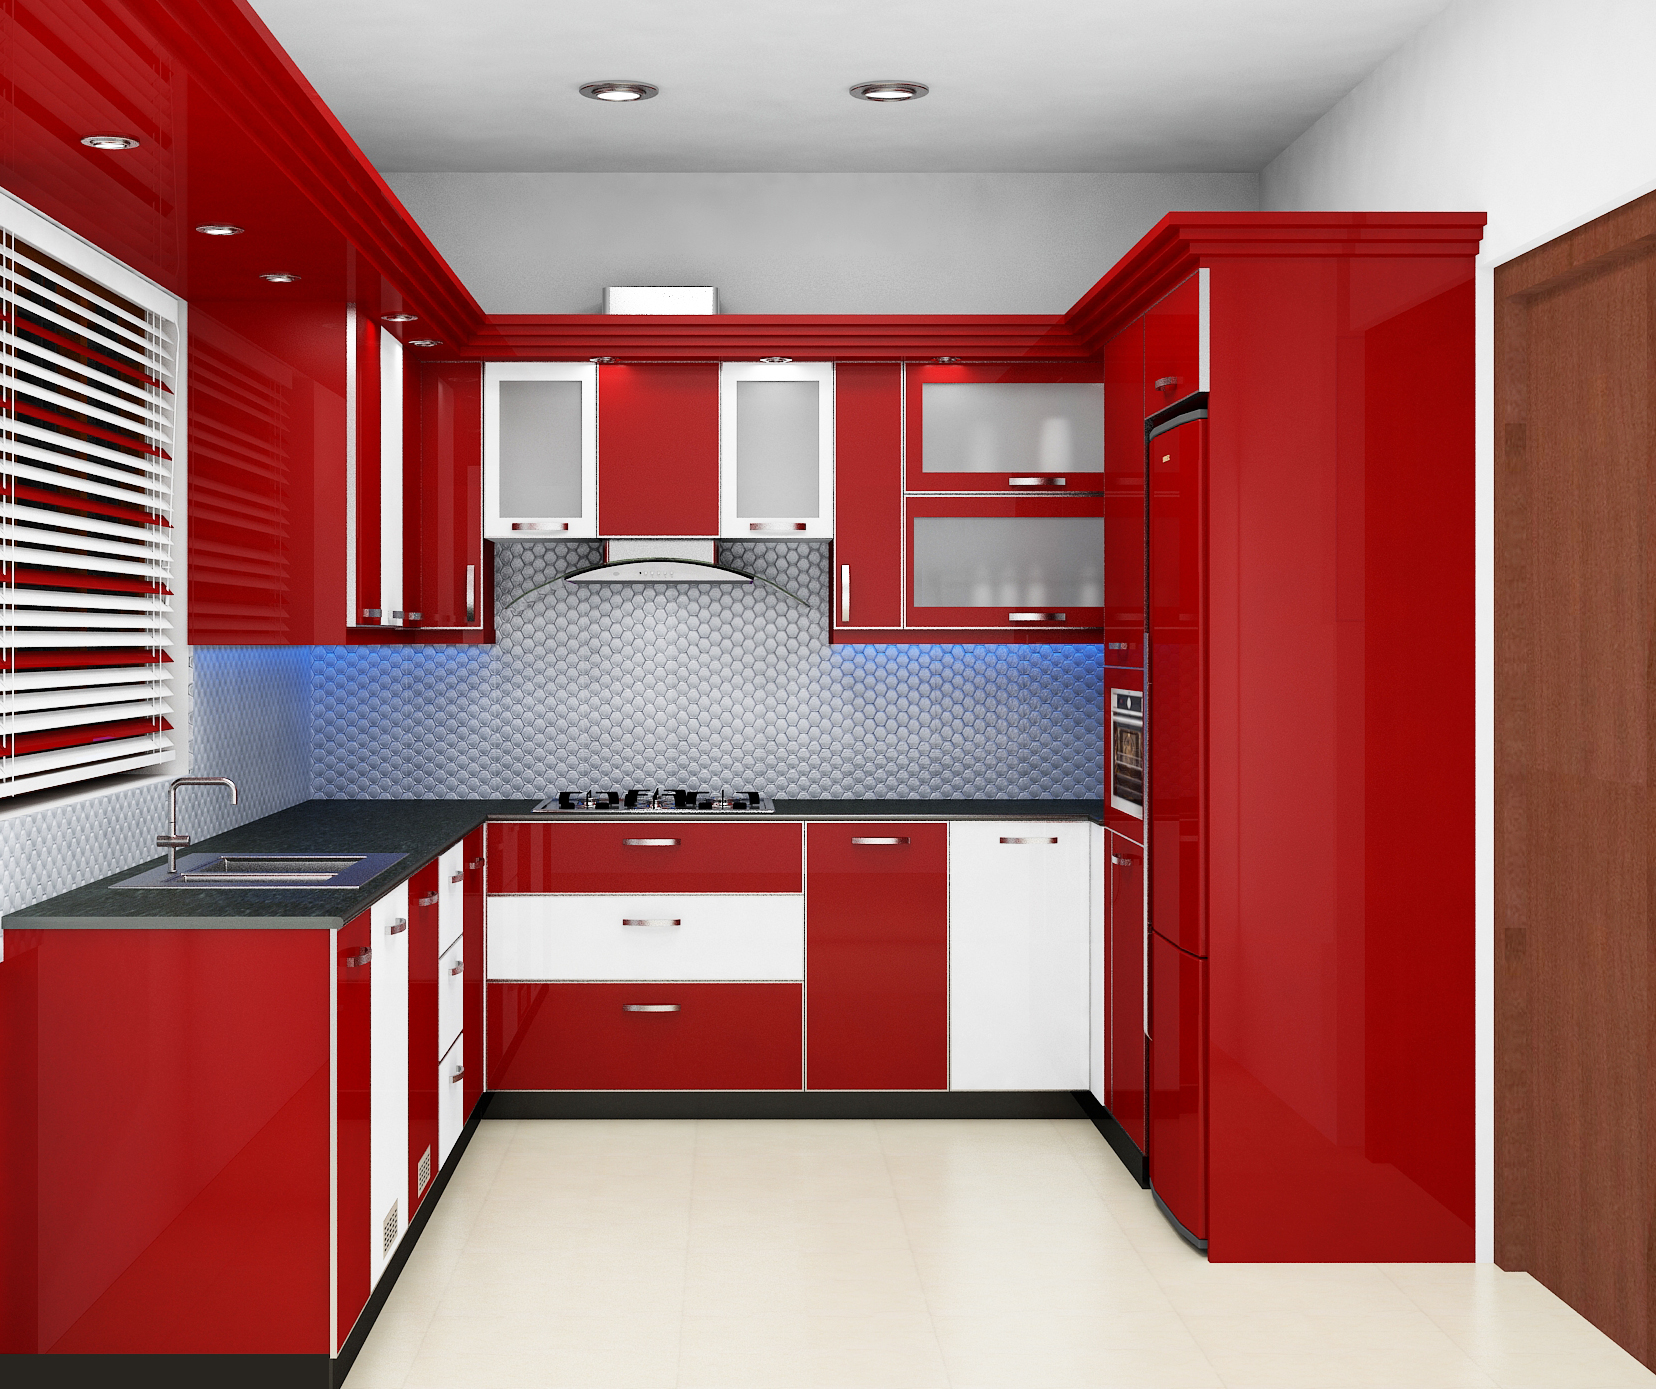 Exemplary and amazing modular kitchen home interior design for At home interior design